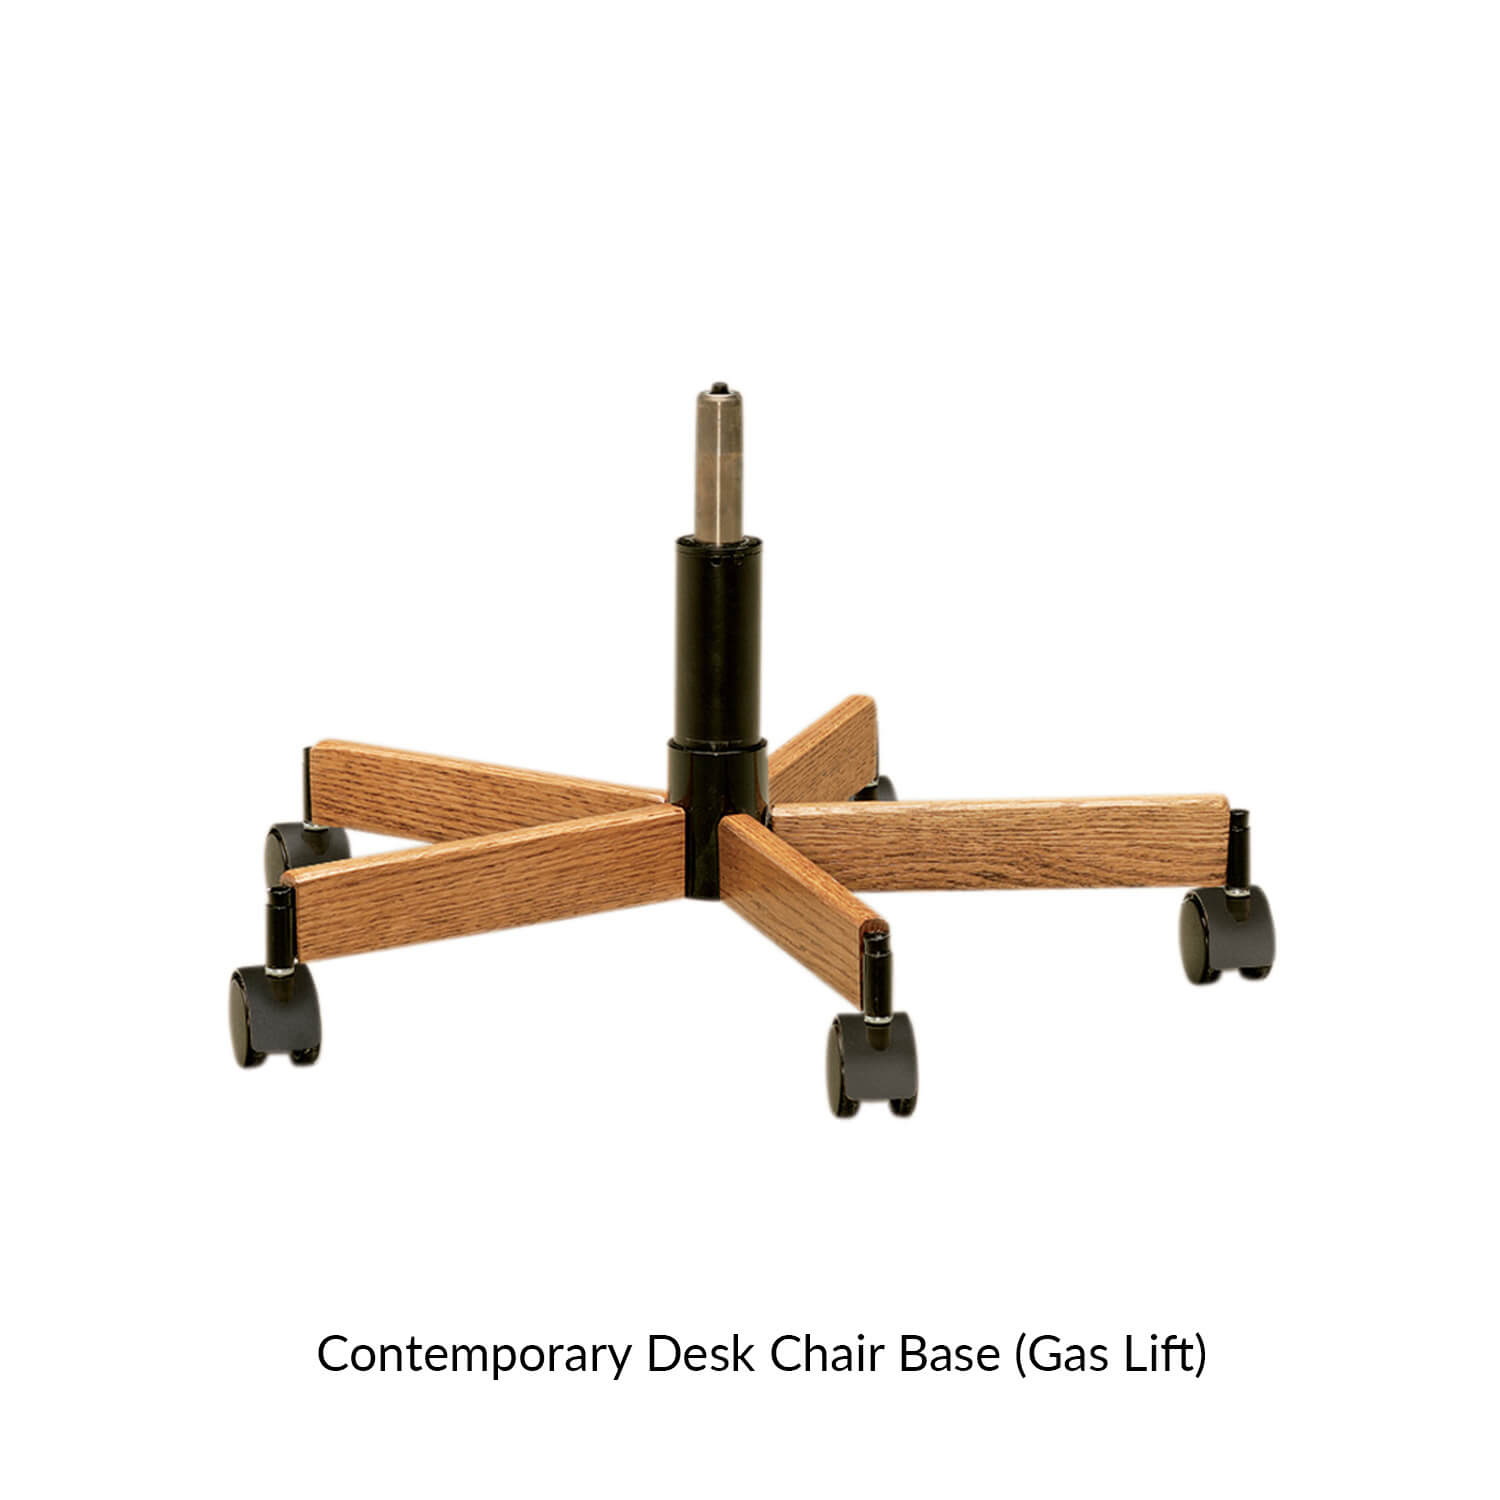 11.0-contemporary-desk-chair-base-gas-lift-.jpg